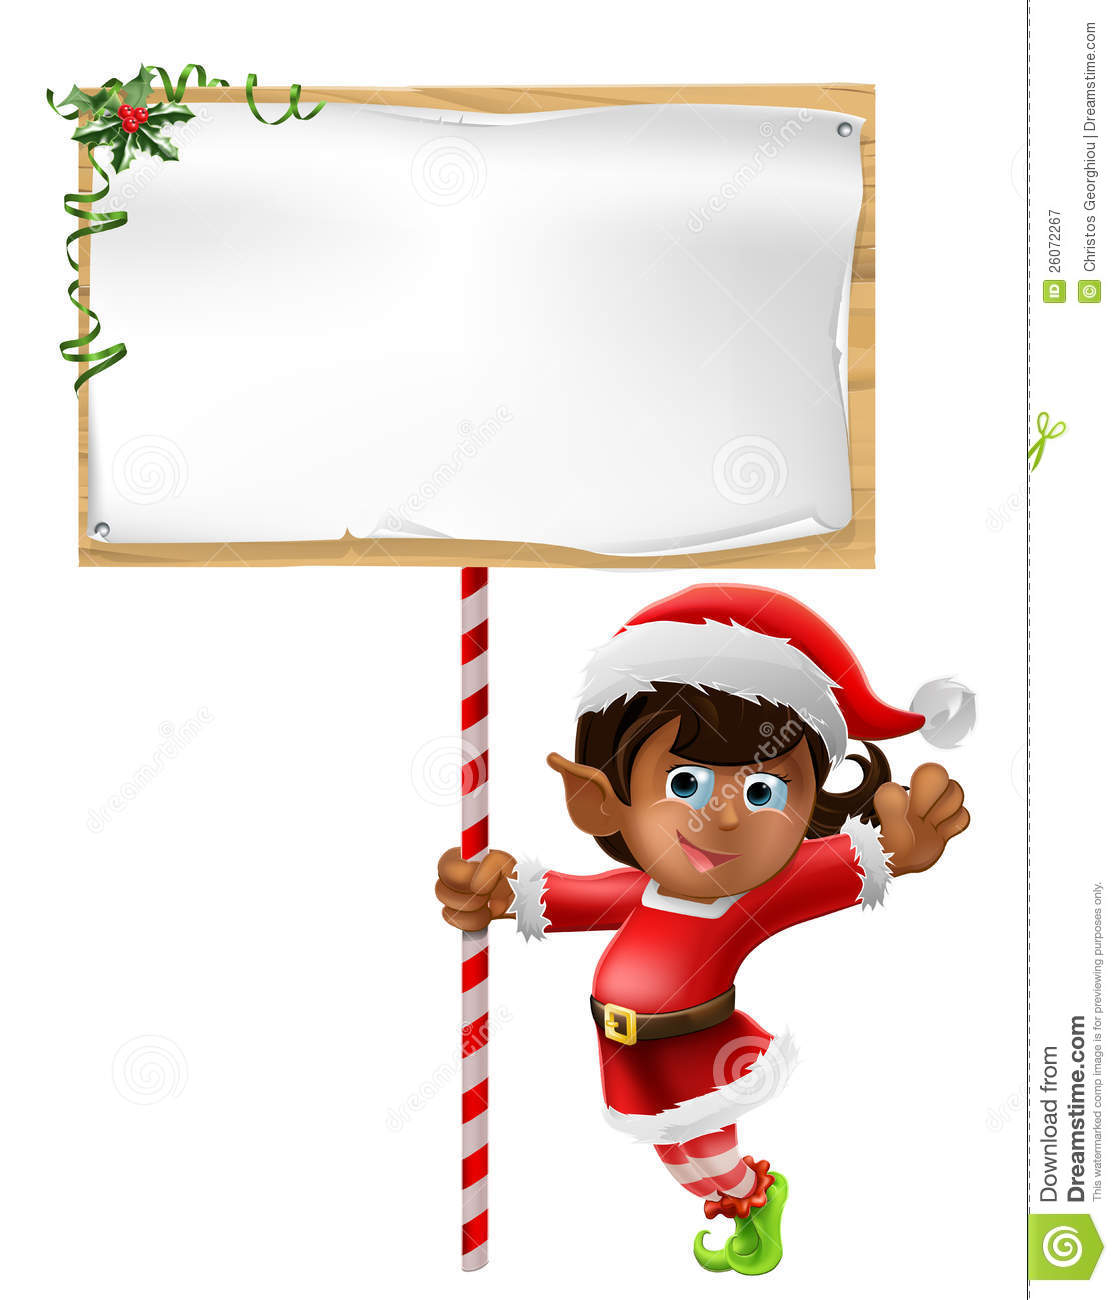 Christmas Elf Holding A Sign Stock Vector - Illustration of ...